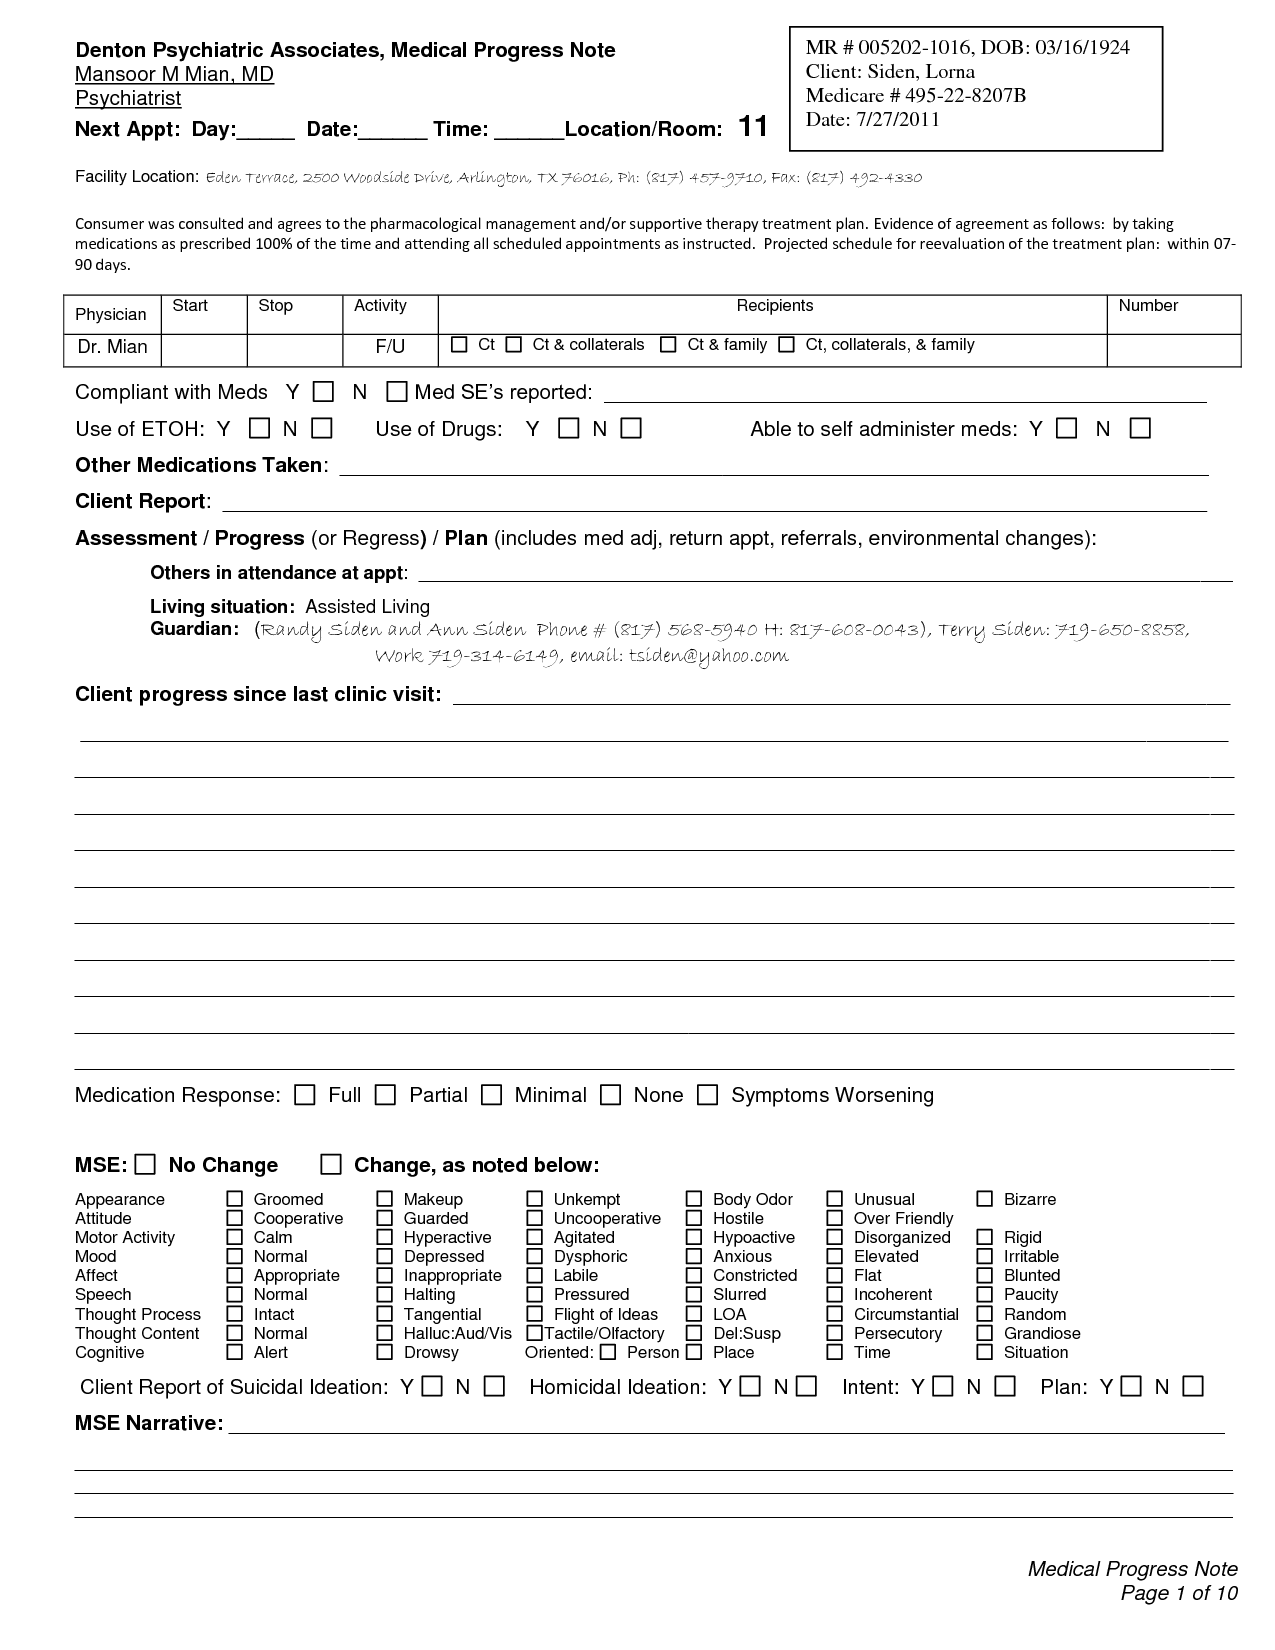 Psychiatric Progress Note Template